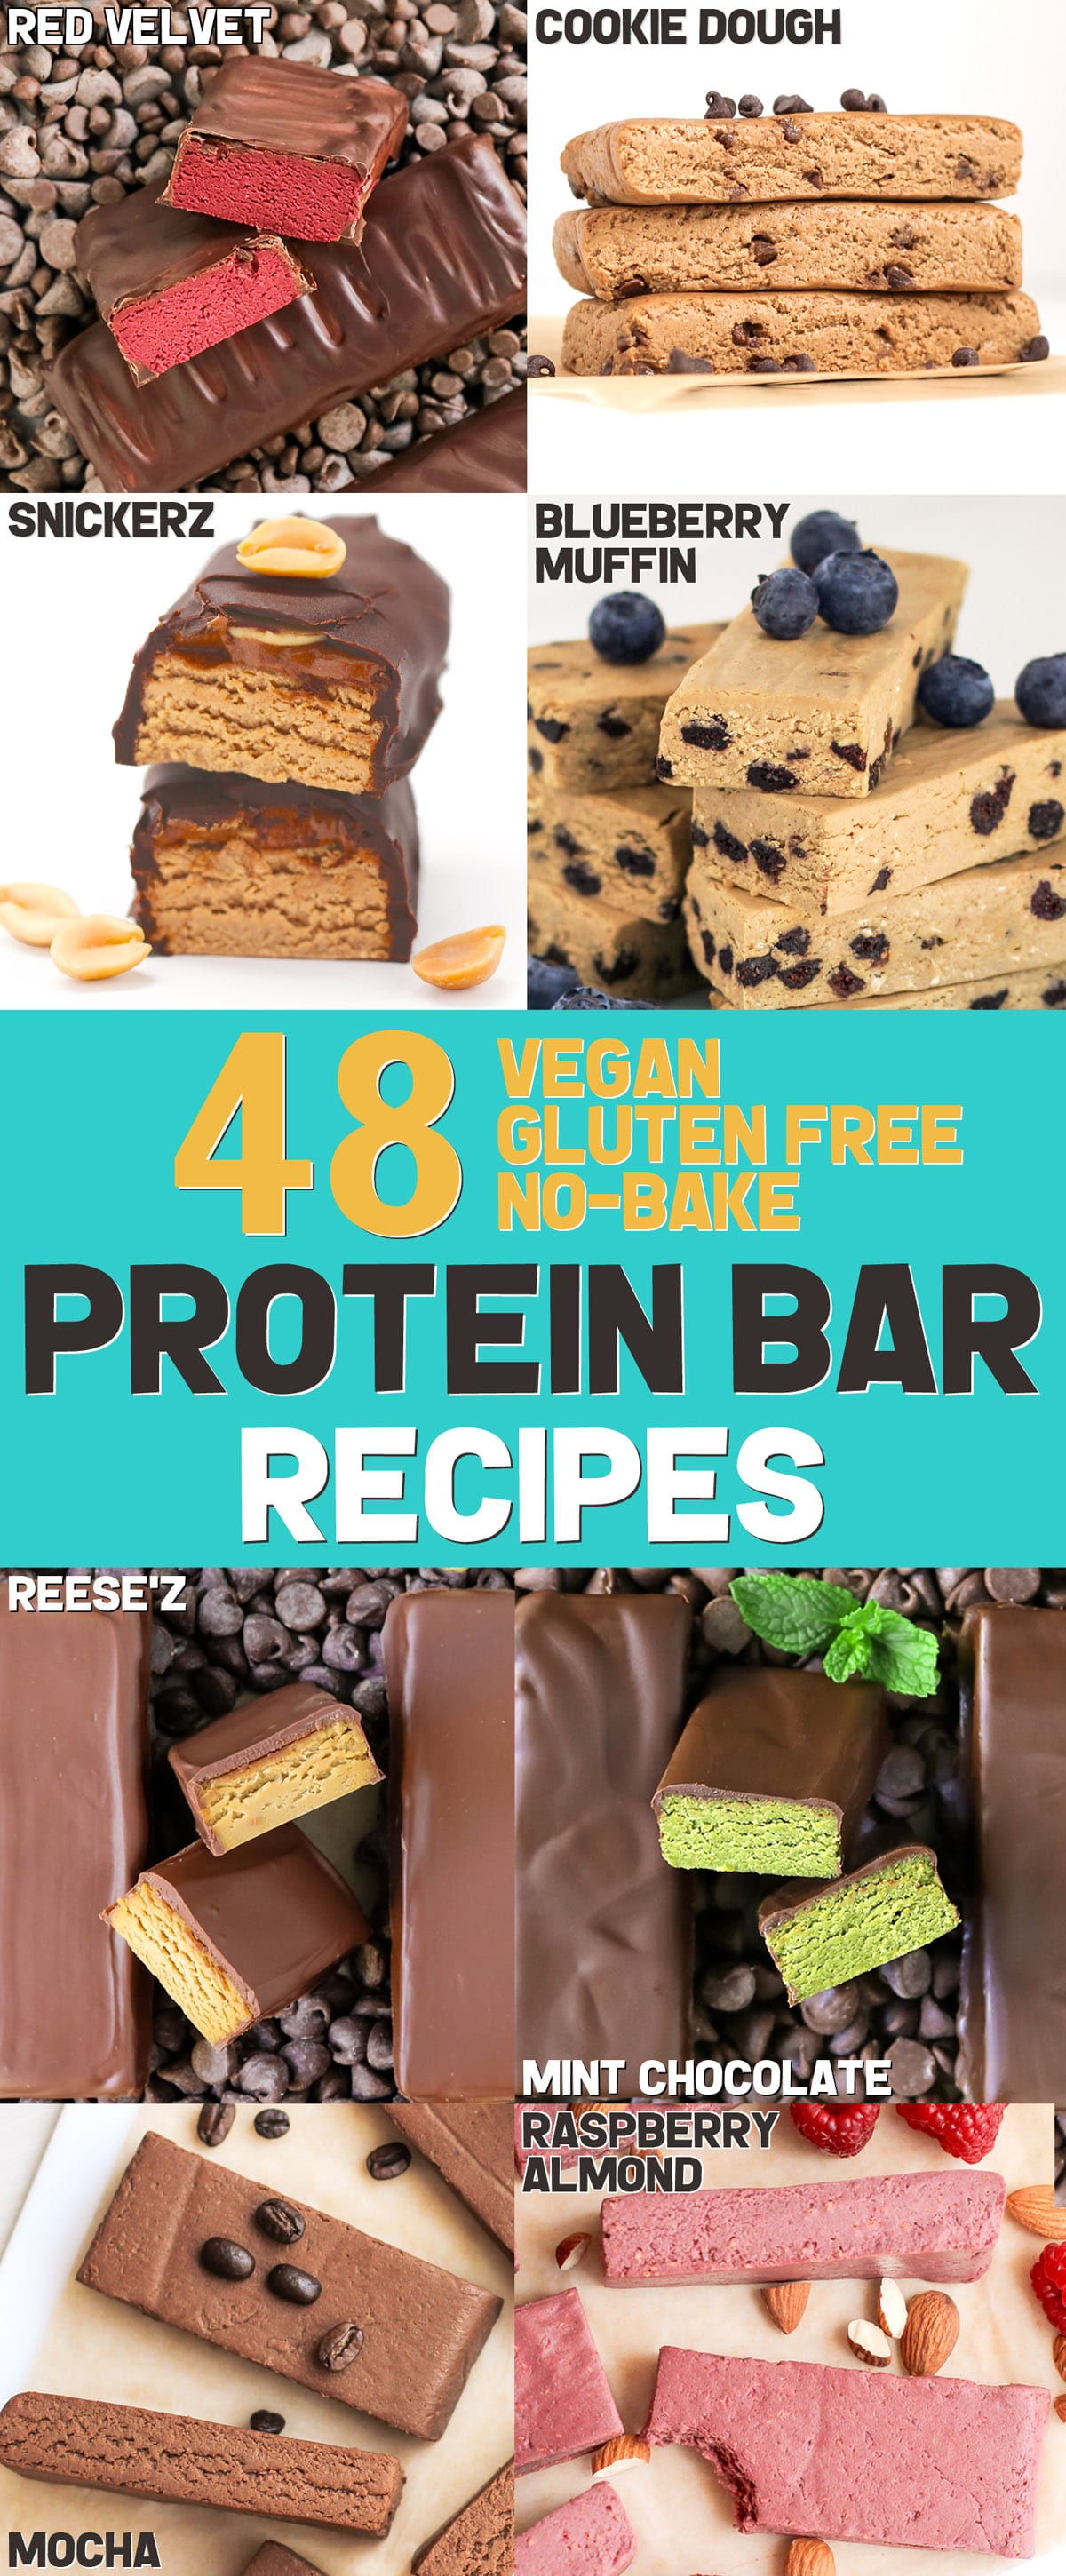 Tired of shelling out cash for protein bars at the store? Make 'em at home with The DIY Protein Bars Cookbook -- a collection of 48 healthy no-bake protein bars recipes to satisfy your sweet tooth! The recipes are gluten-free, dairy-free, soy-free, vegan, and all-natural too!